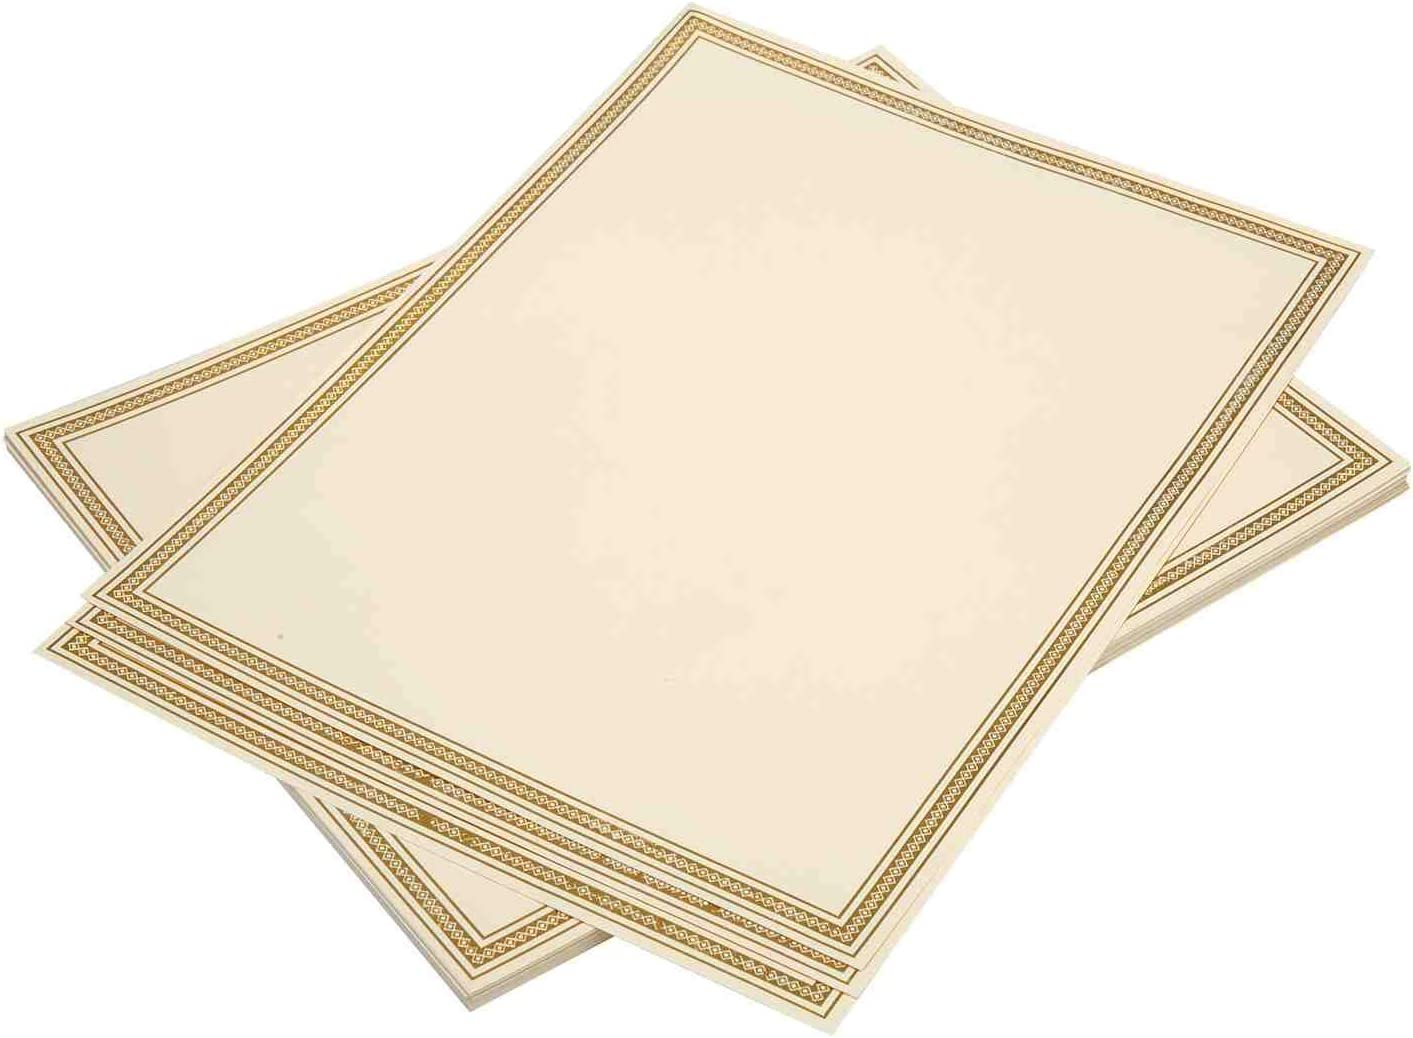 Certificate Paper 20 Pack with Gold Foil Border 8.5 x 11 180 Gram Premium Paper Award and Diploma Paper Compatible with Inkjet and Laser Printers